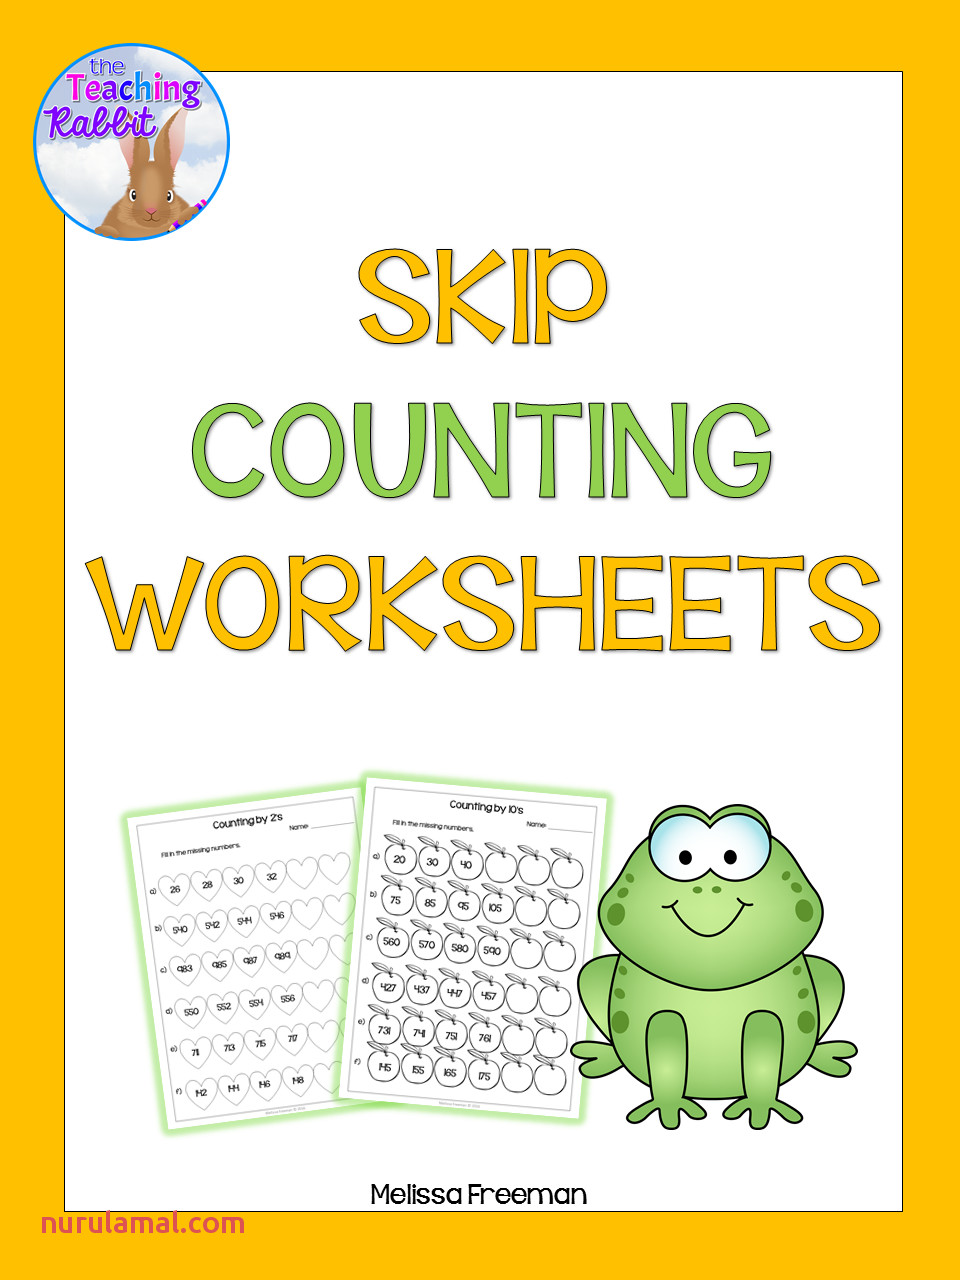 Skip Counting by 3 S Worksheets for Kindergarten Count by 3